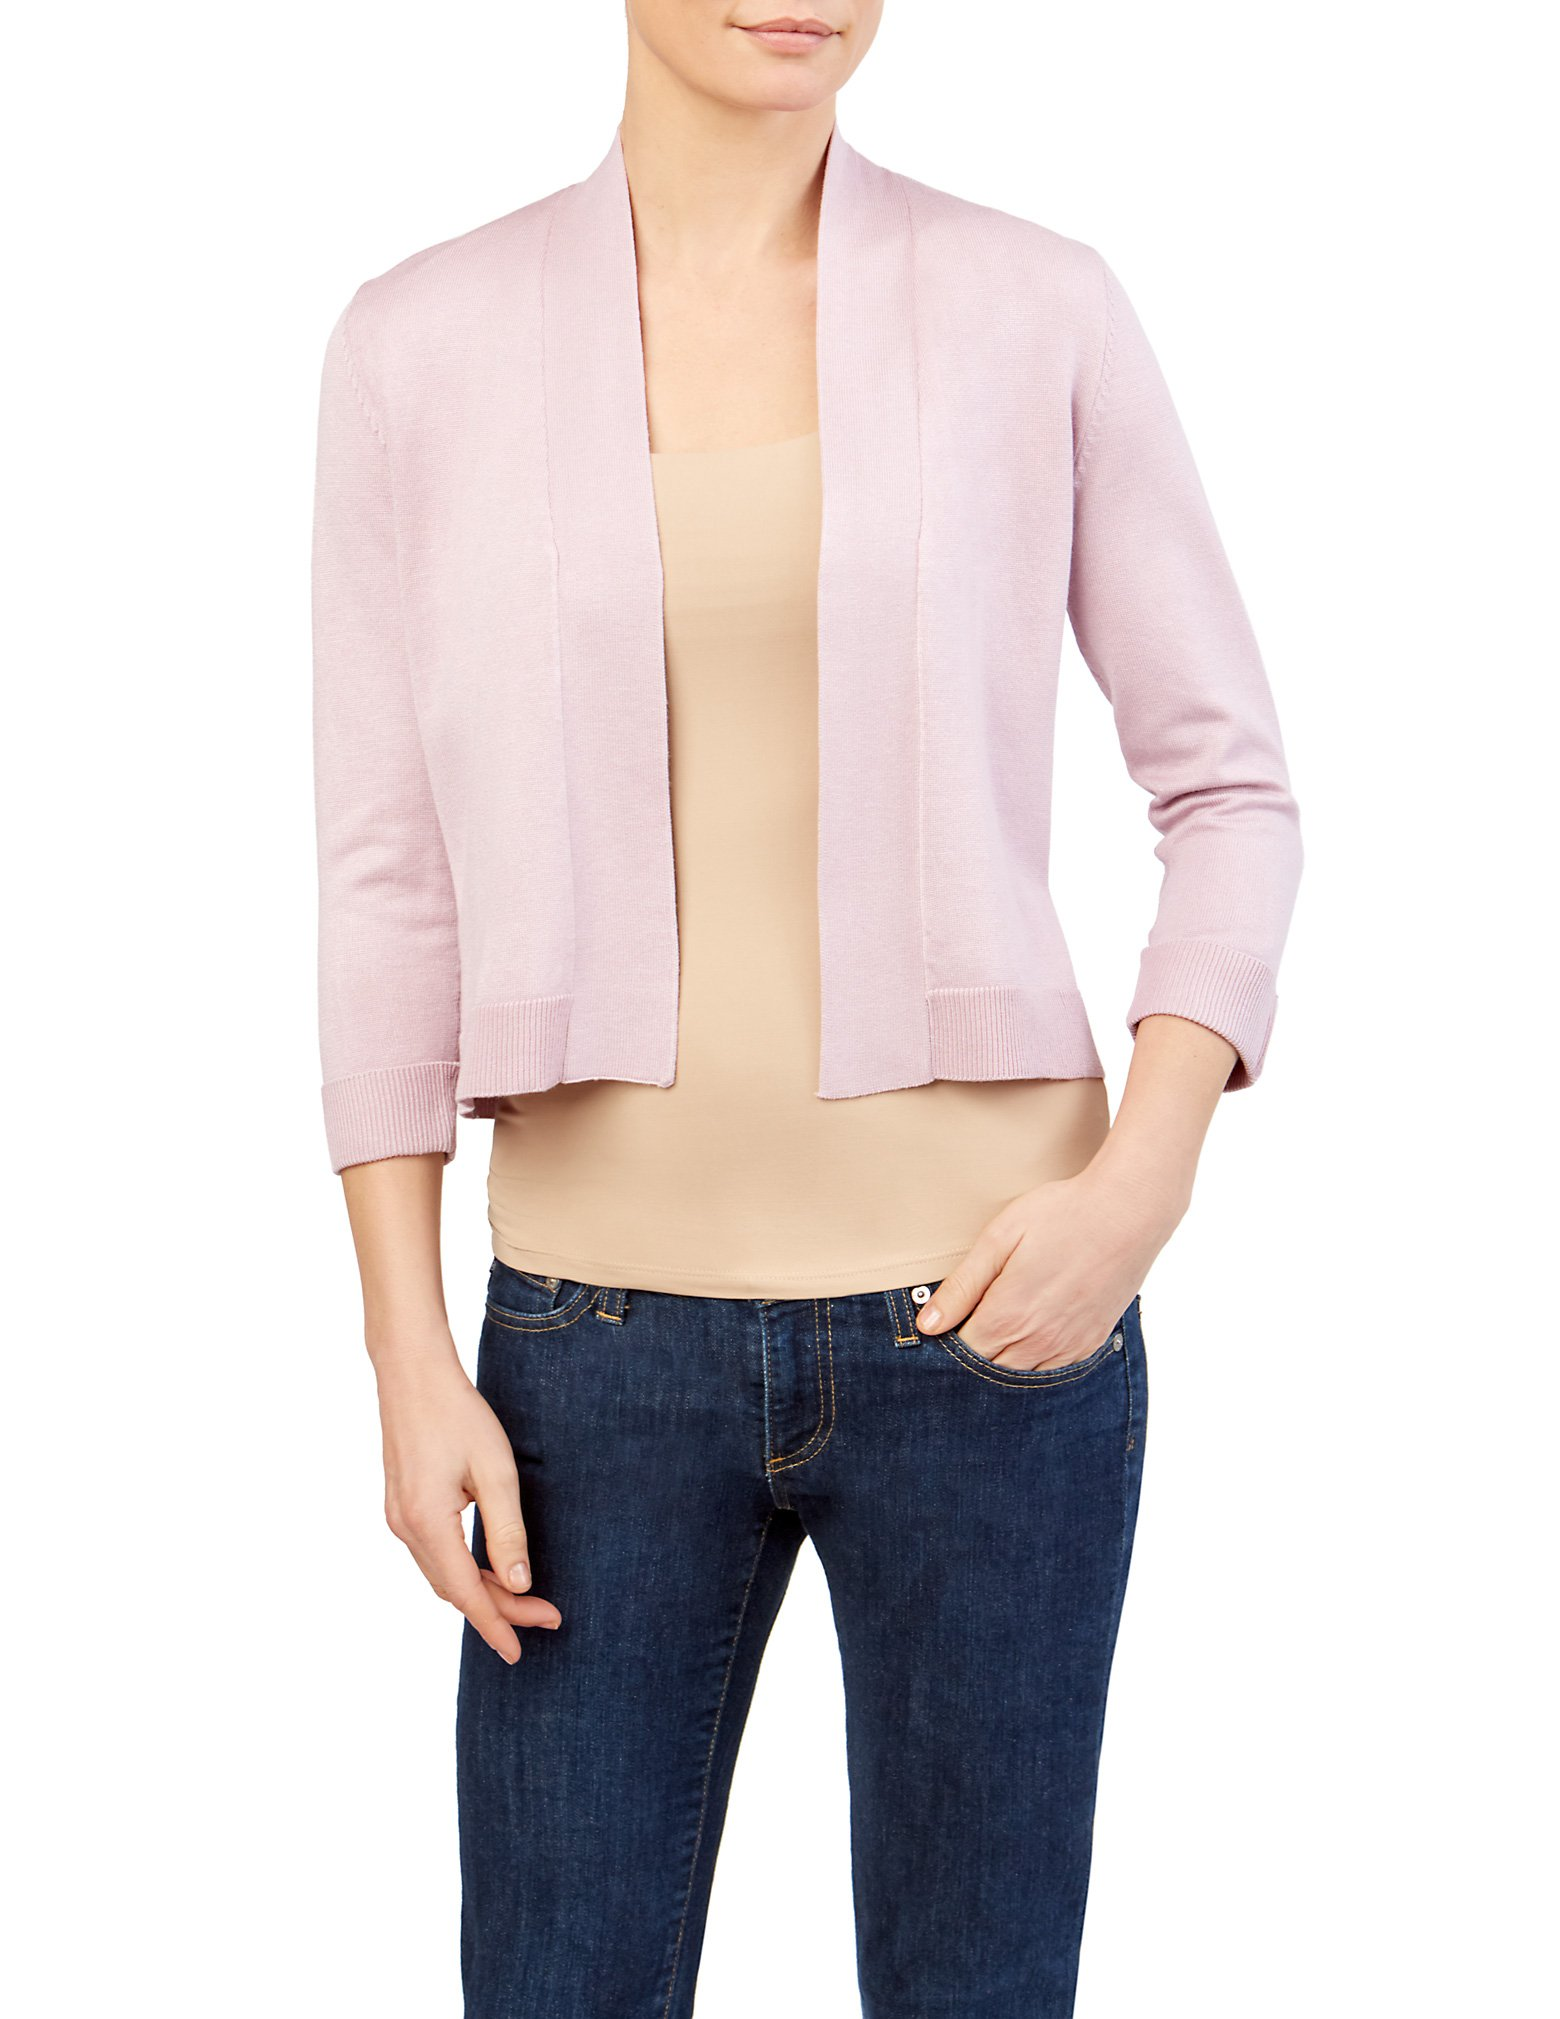 89th&Madison Notch Cuff Cardigan Shrug